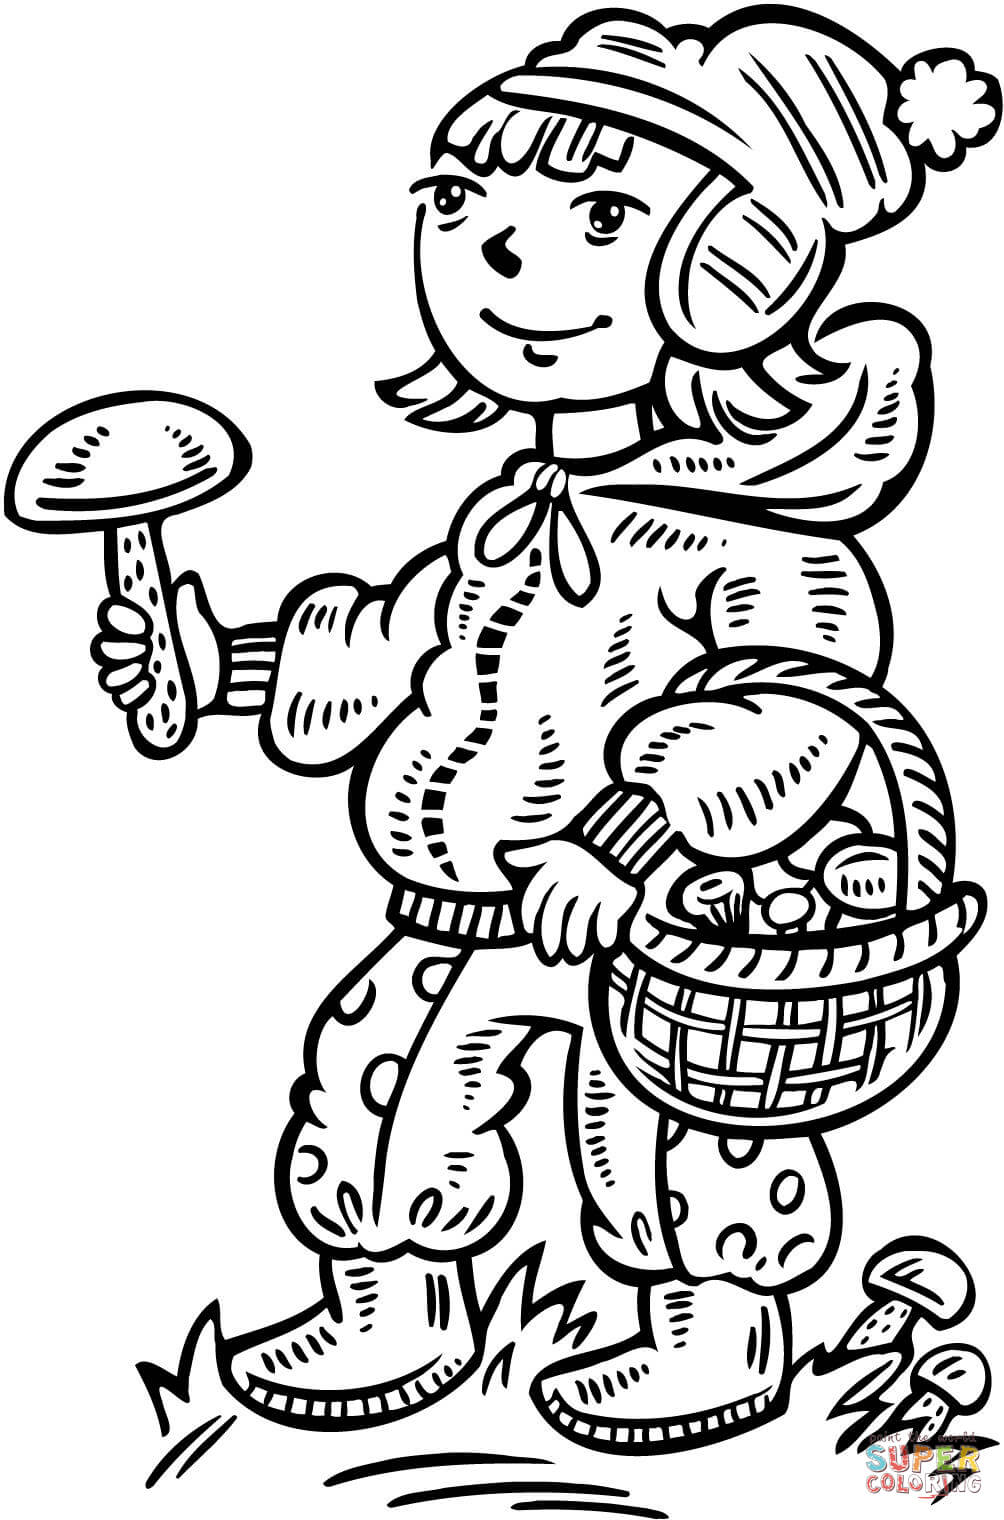 coloring pages for girls age 11 fixiki coloring pages cartoons for 3 years kids age for 11 girls pages coloring